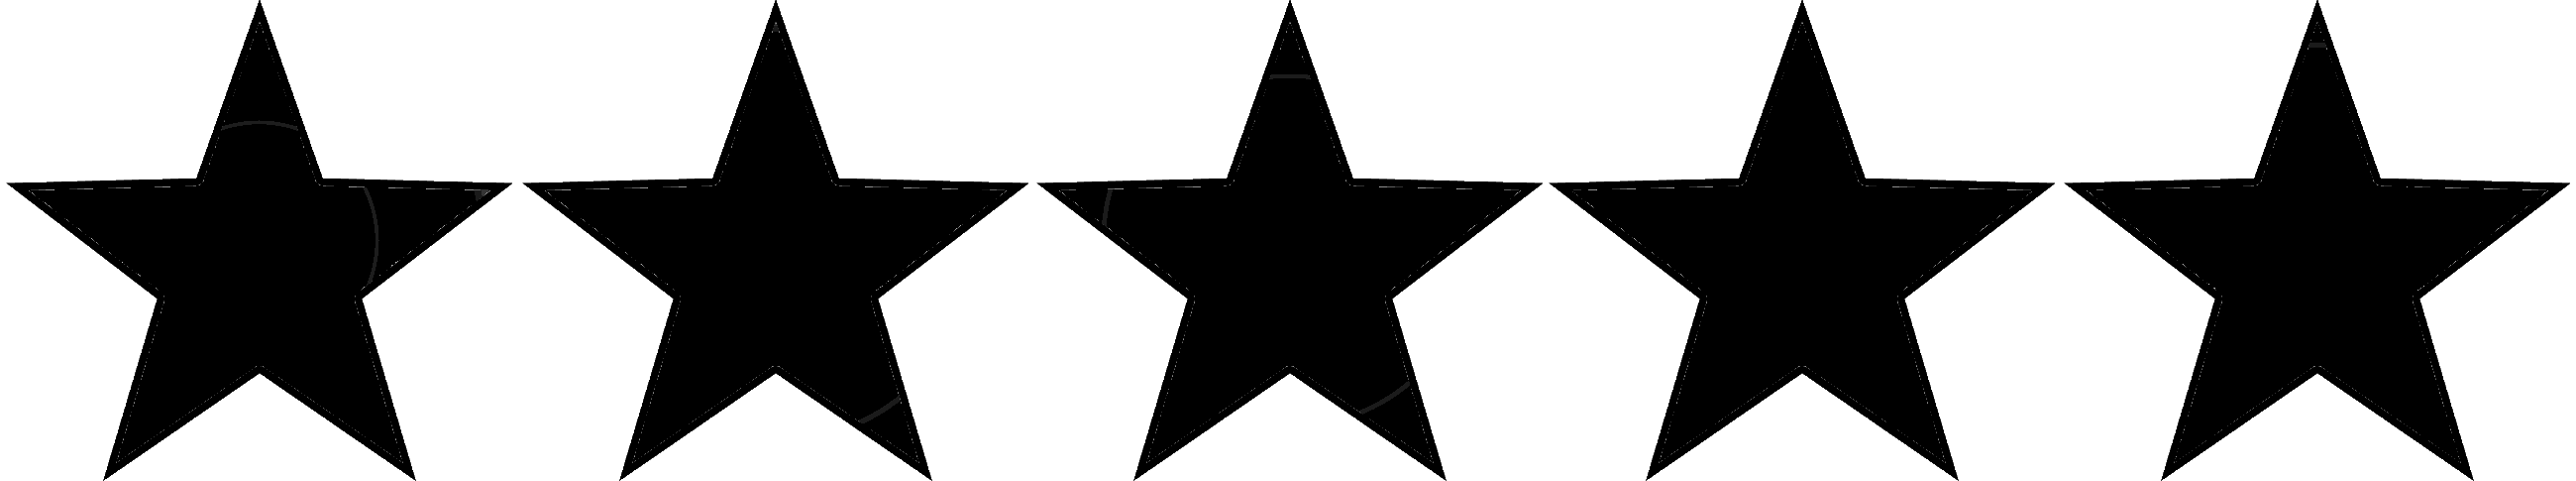 We Used Google In Our Production Stage Of Creating Our Advert To Find The Above 5 Stars Which Enhanced The Star Im Star Images This Or That Questions Character